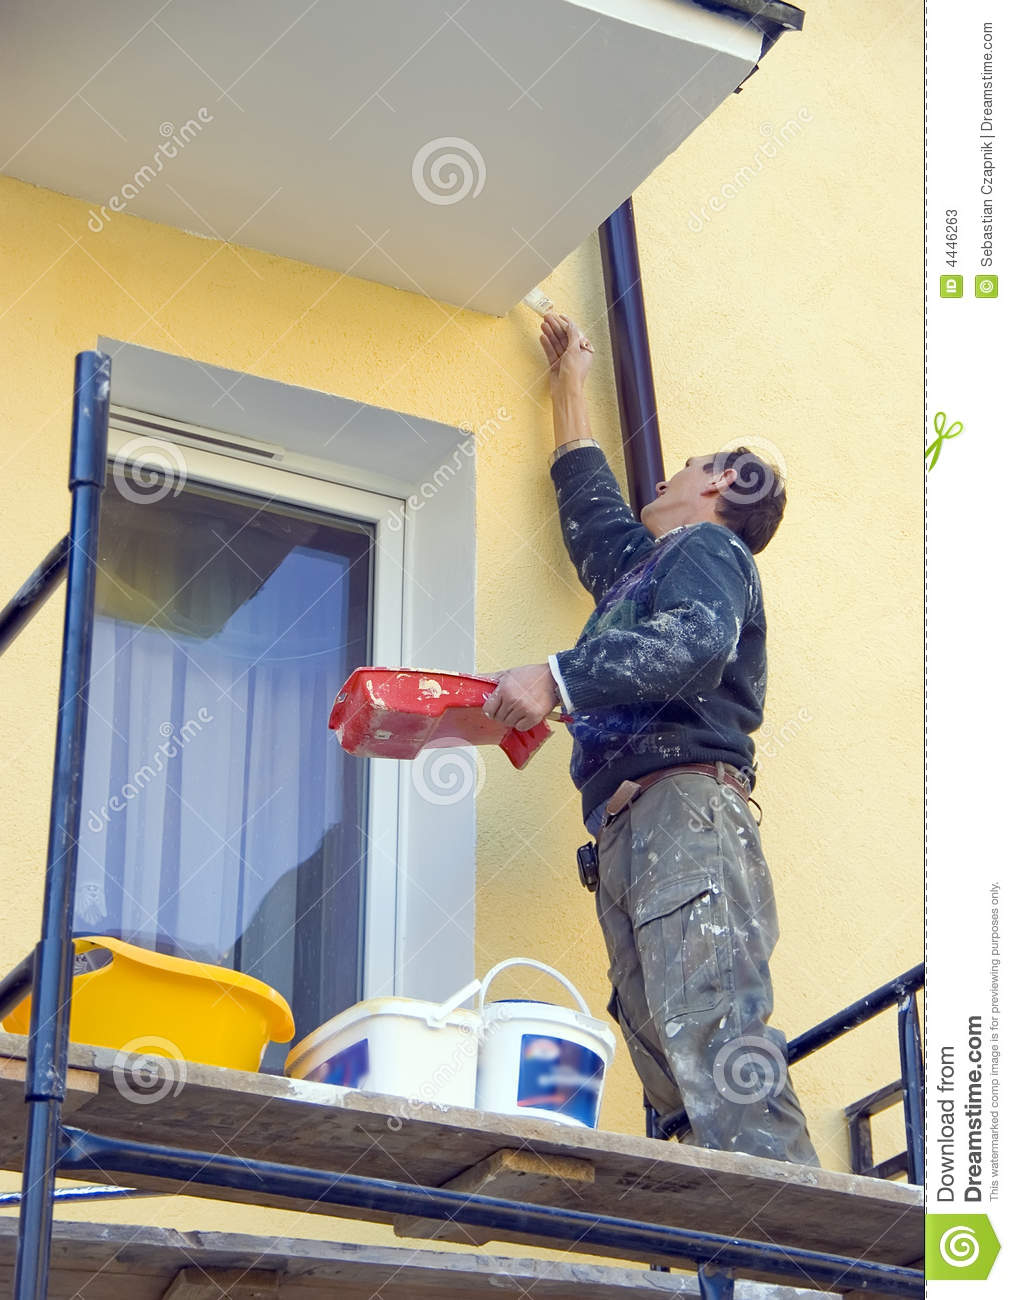 painting house facade stock photos image 4446263